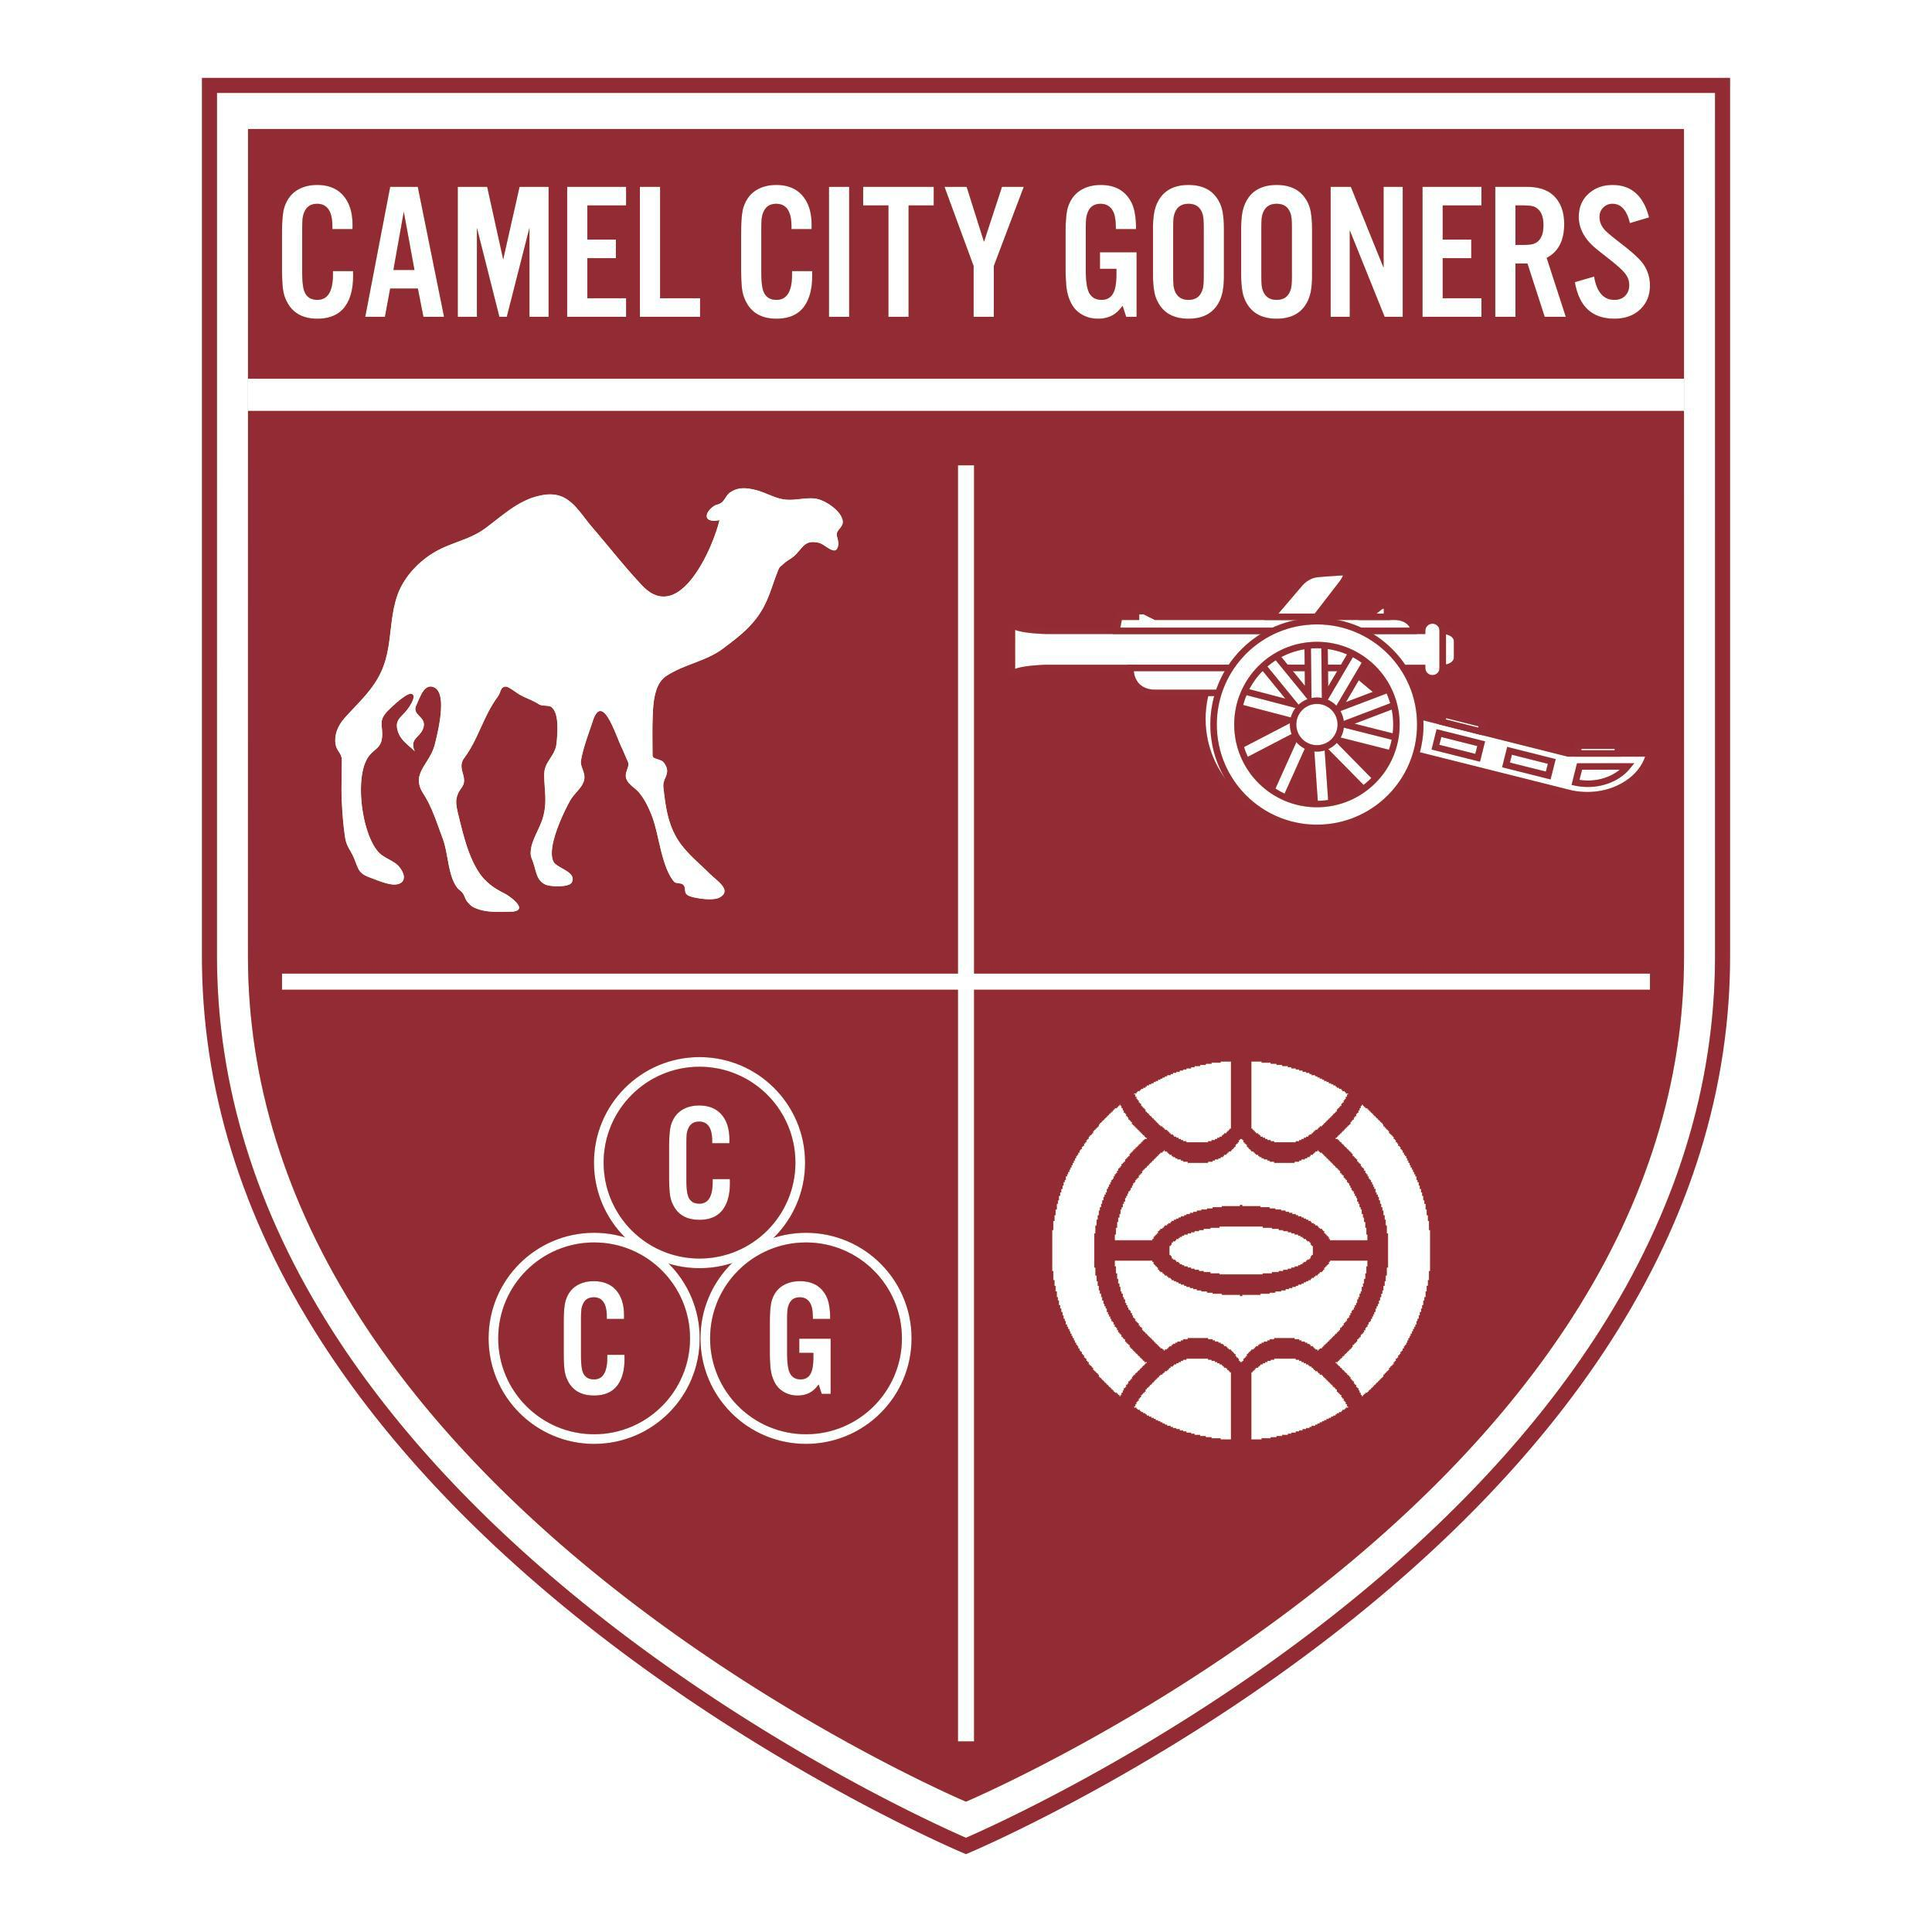 Camel City Gooners